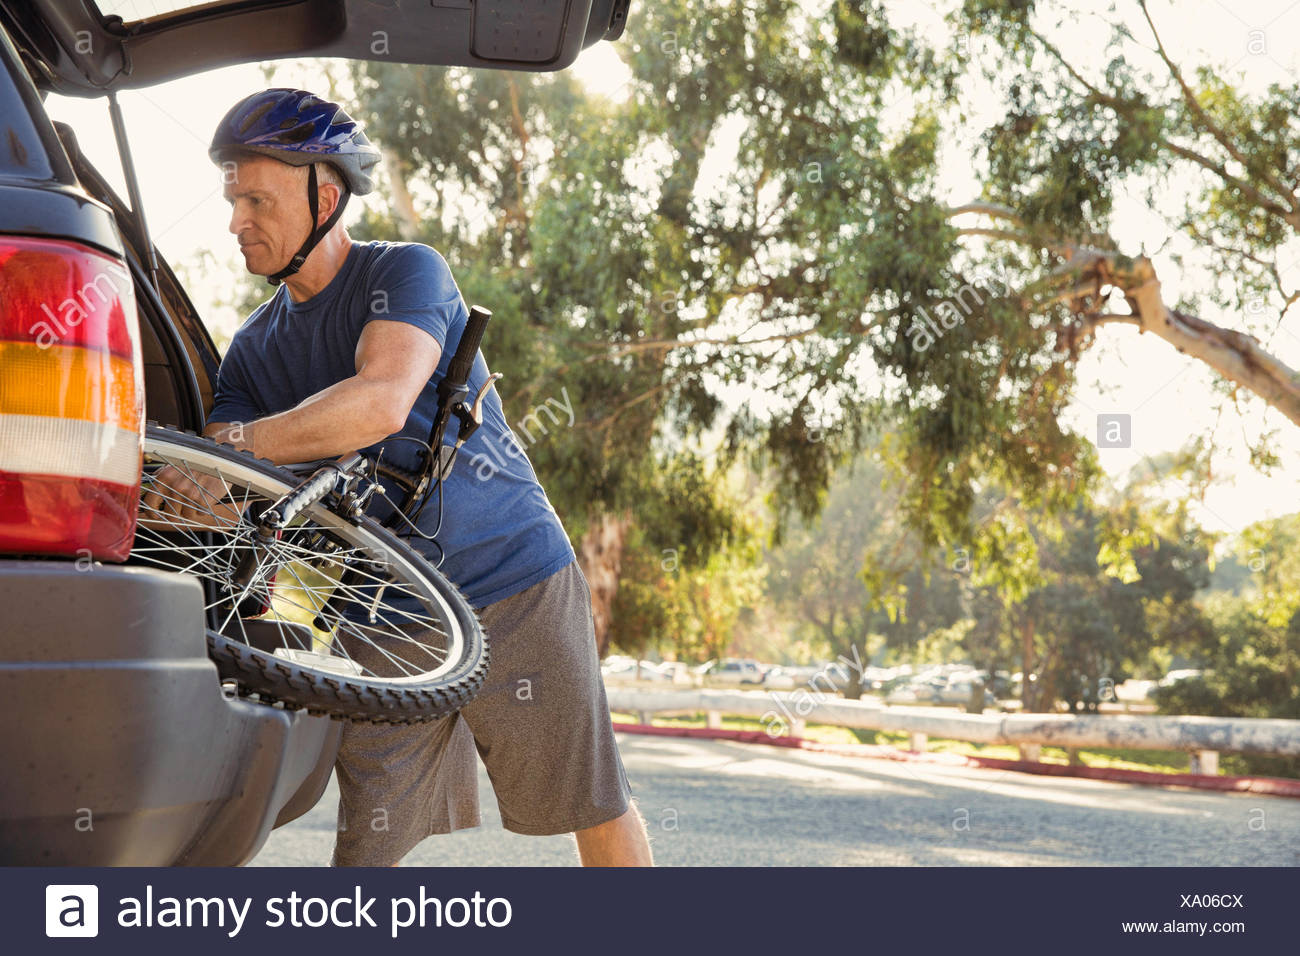 Mature man removing bicycle from car boot in park - Stock Image